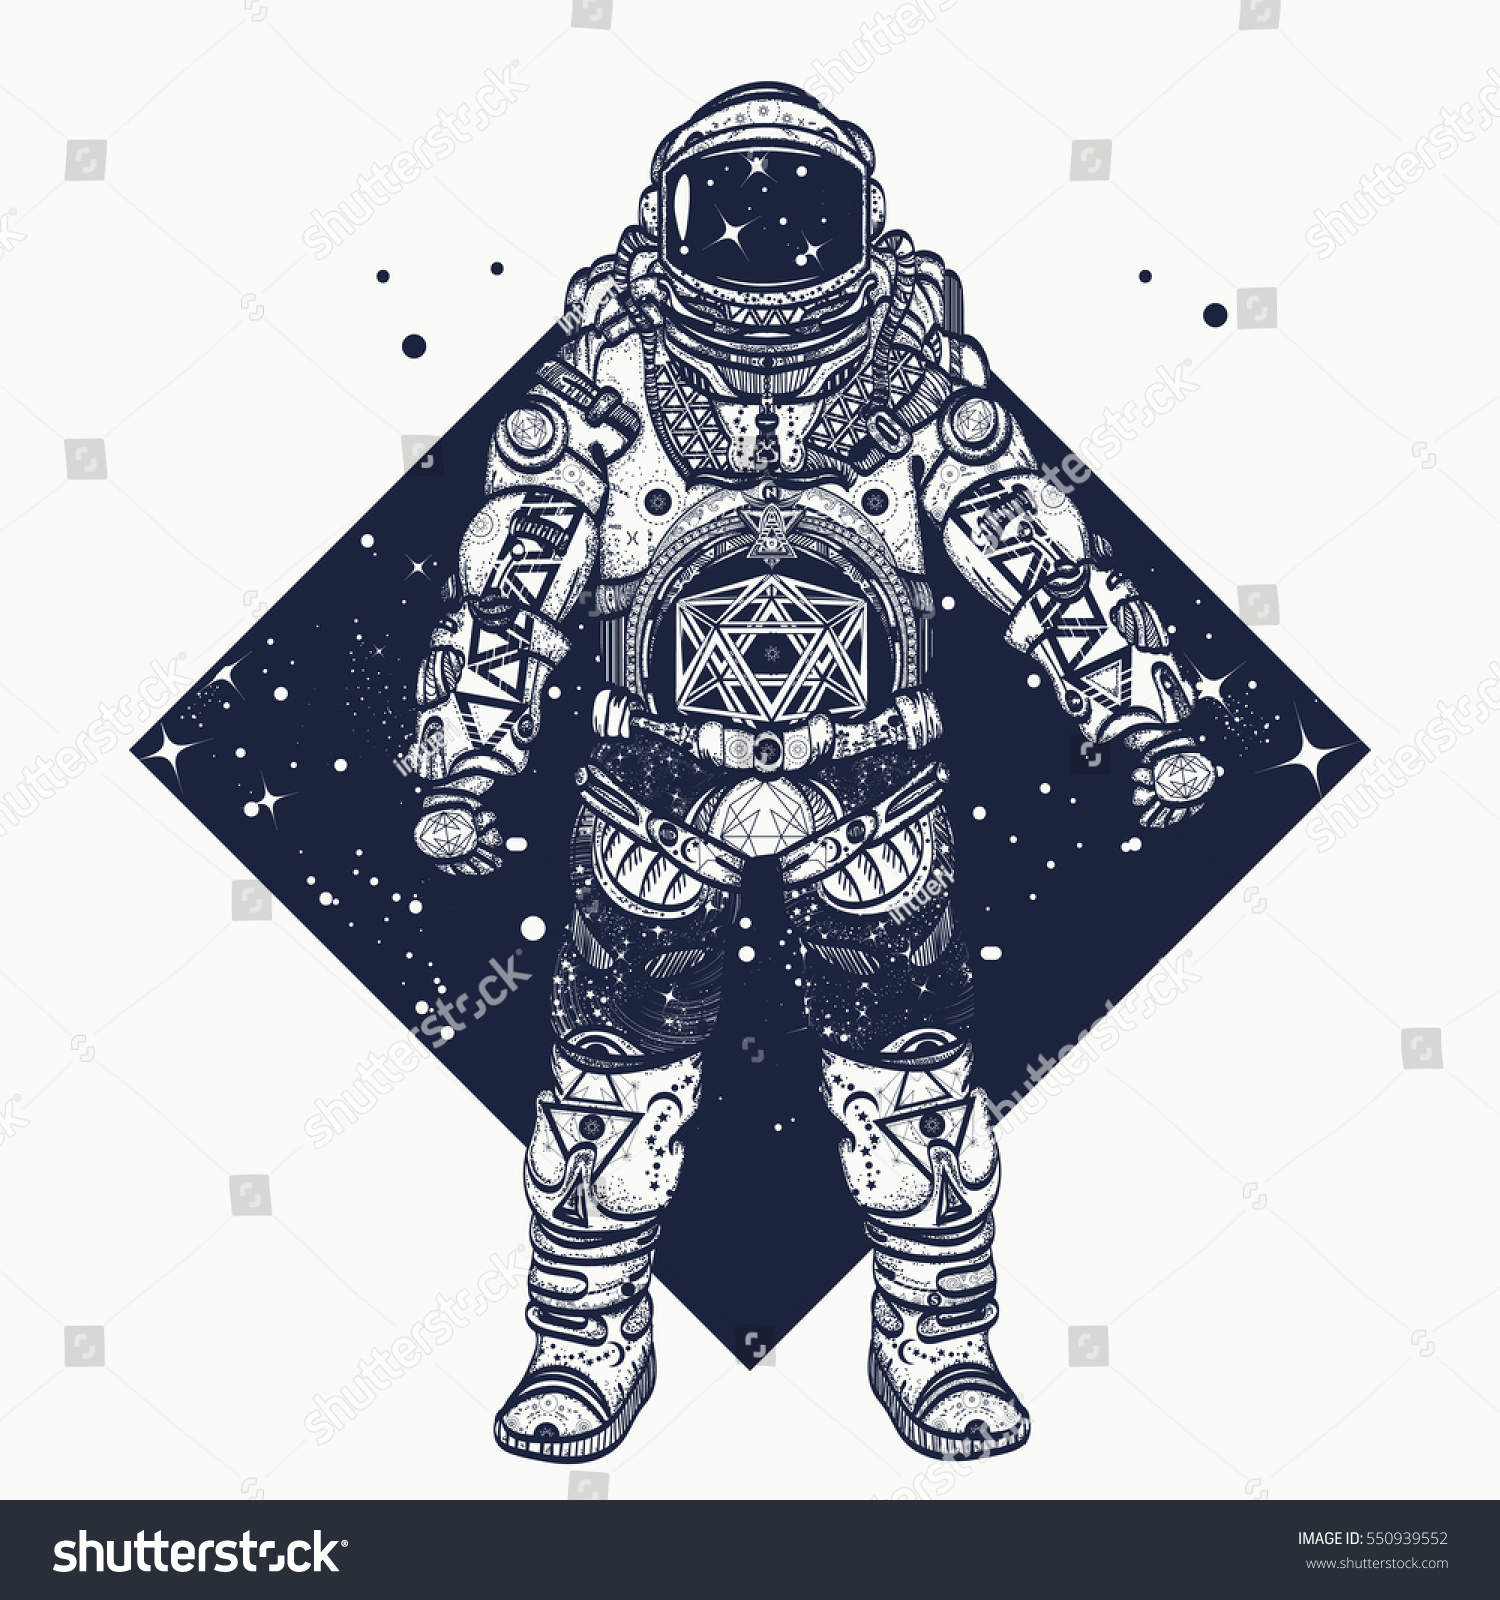 Astronaut Tattoo Cosmonaut Deep Space Triangular Stock Vector Royalty Free 550939552